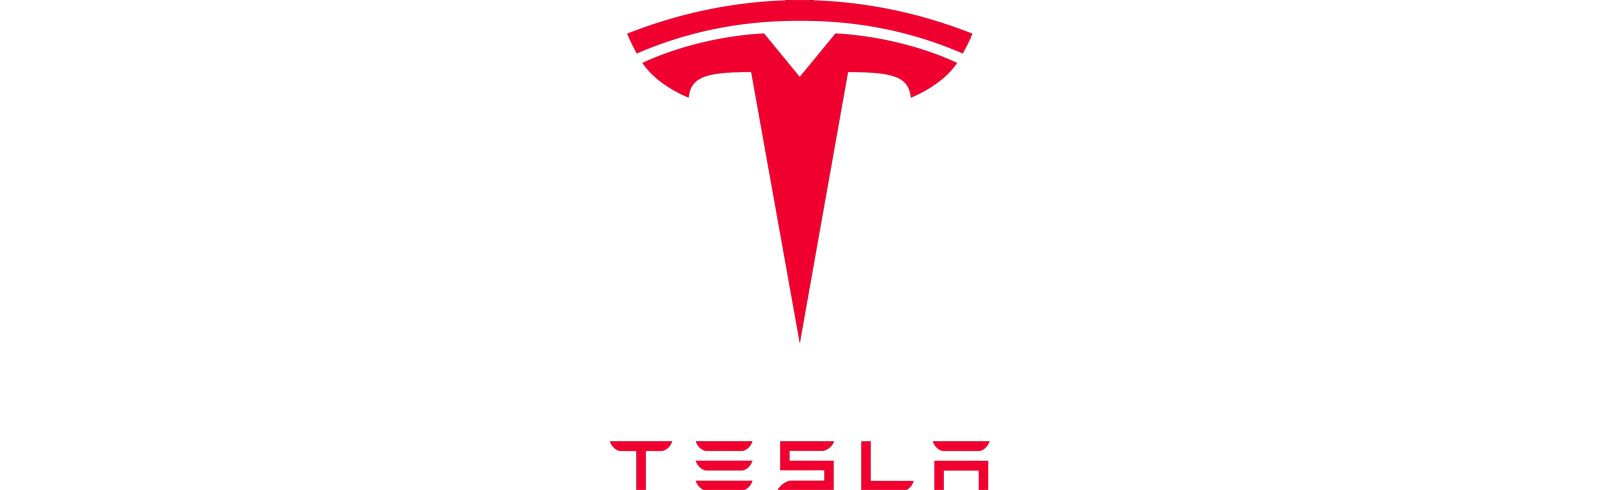 Tesla Q4 2019 production and deliveries numbers